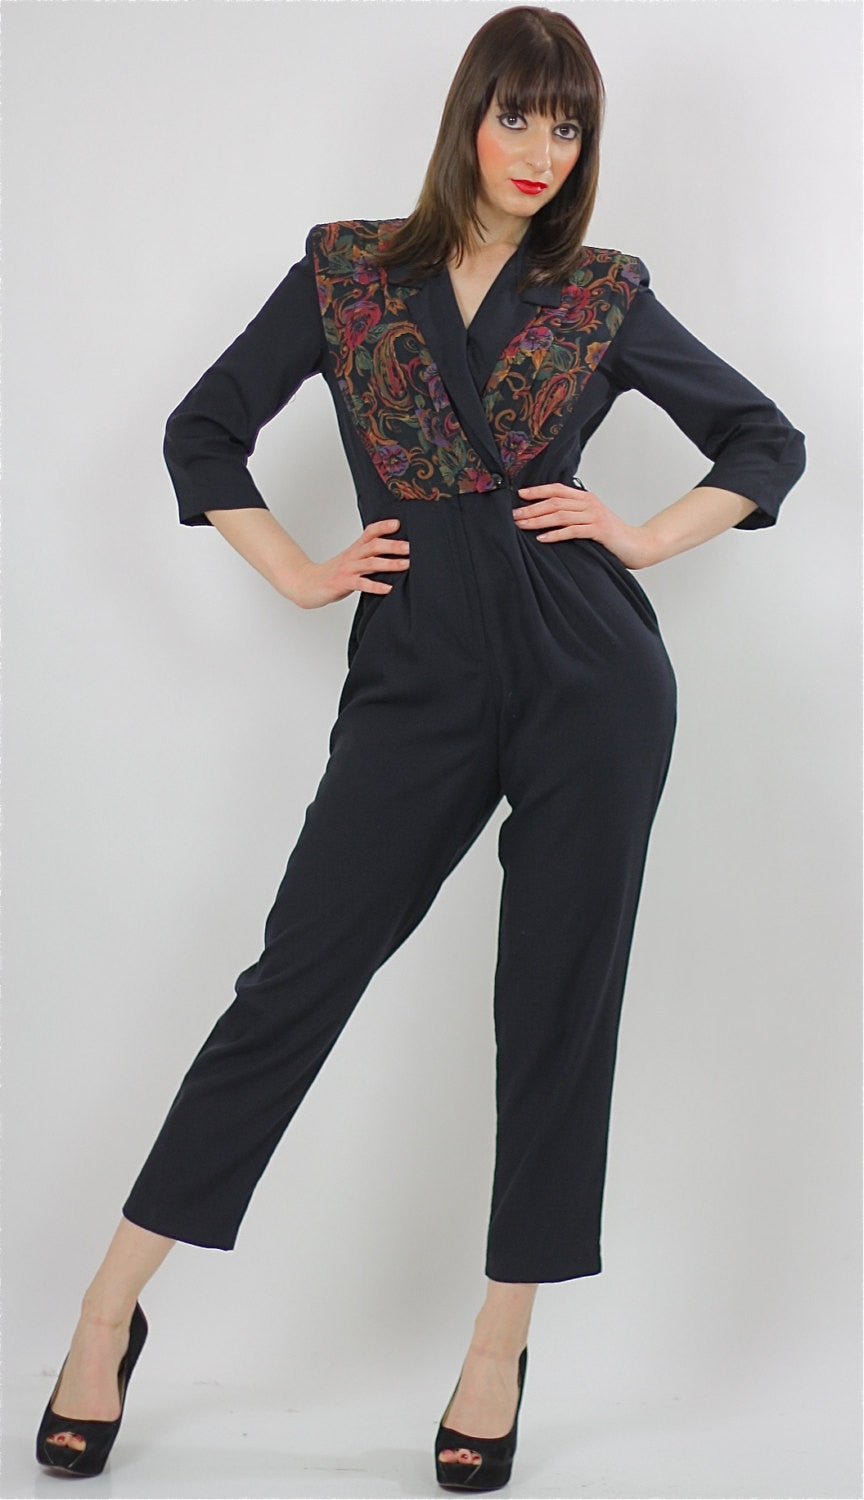 4bbd5ffda9c paisley jumpsuit Hippie Boho wrap surplus romper 1980s black criss cross  long sleeve high waist tapered